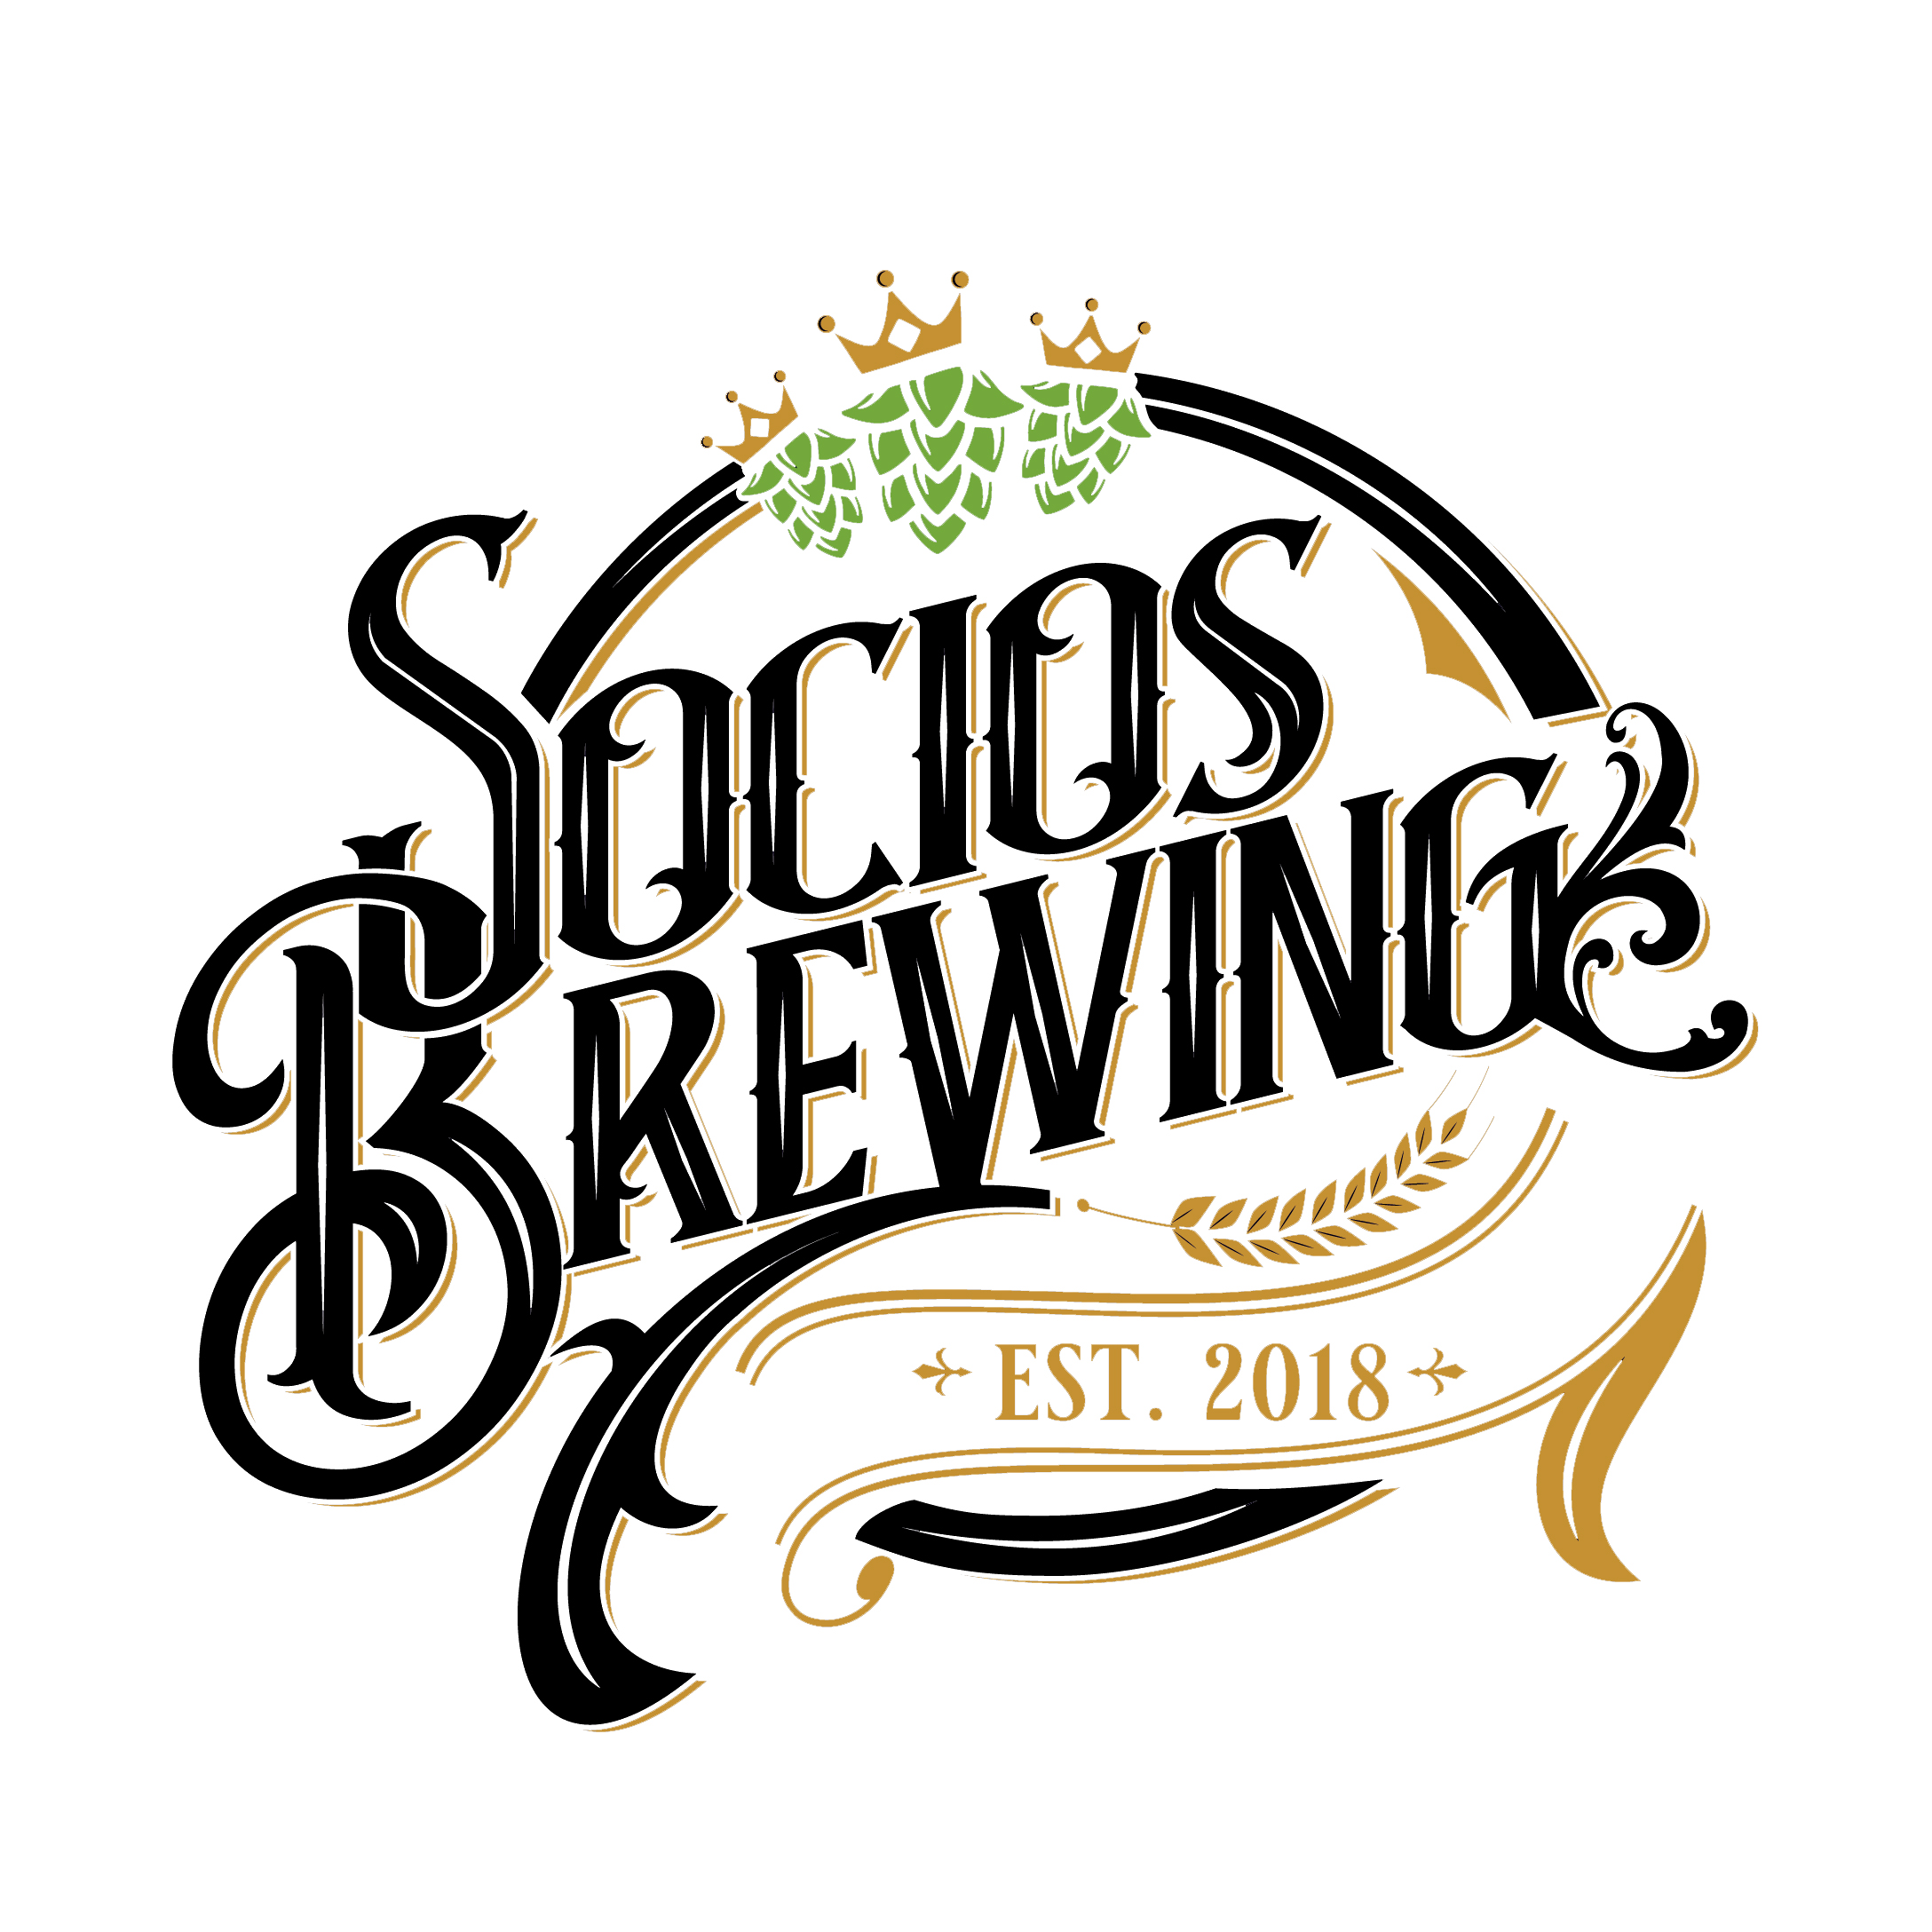 Socios Brewing